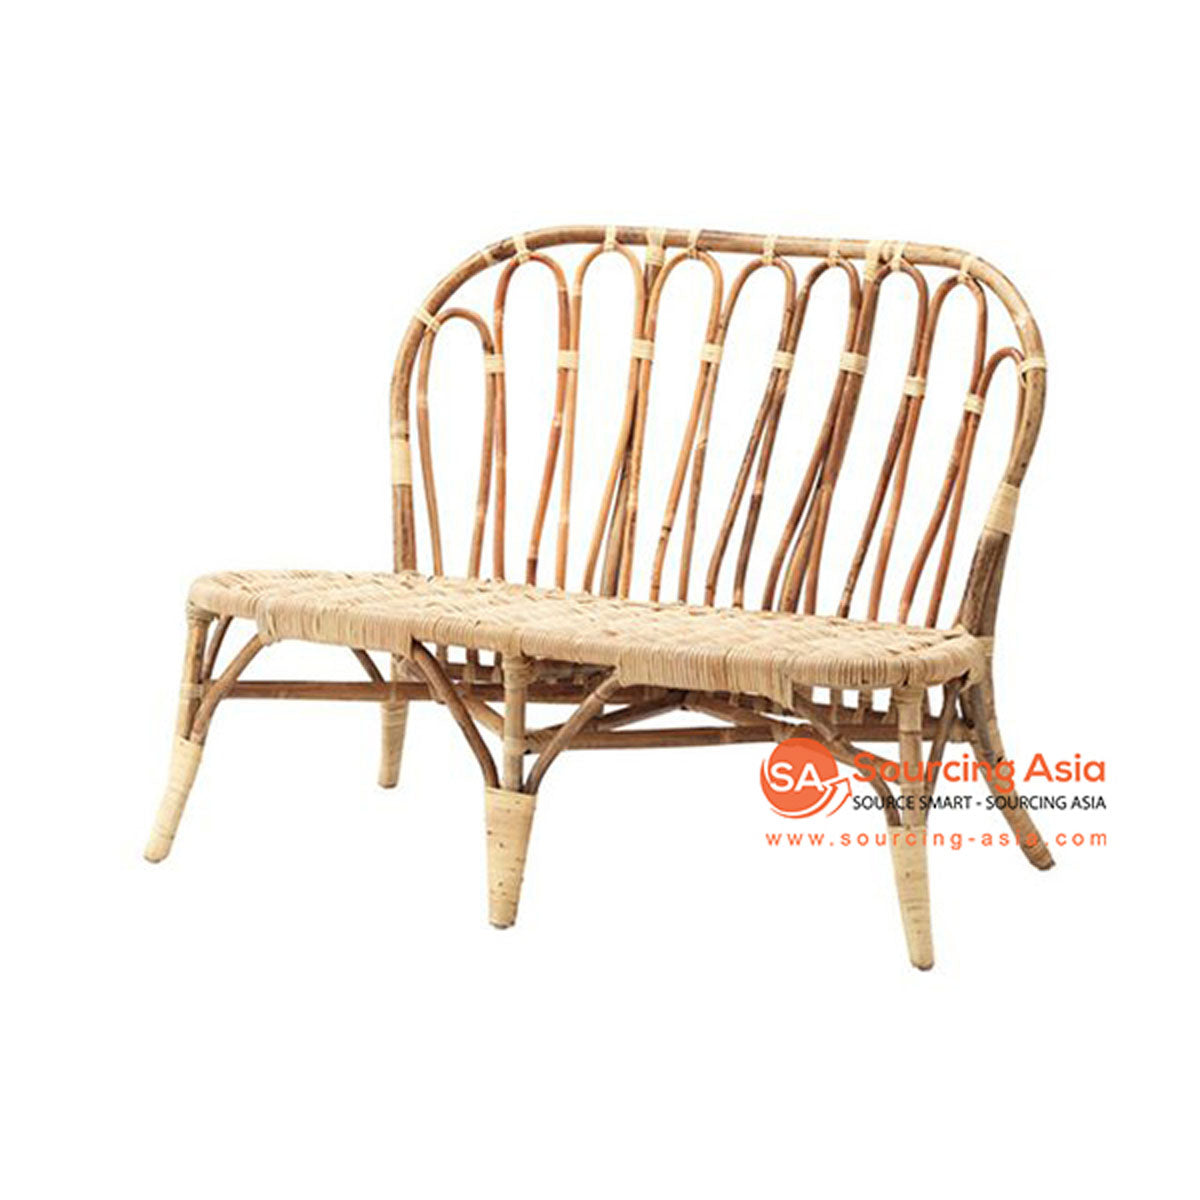 SHL118 NATURAL RATTAN UPHOLSTERED TWO SEATS CHAIR